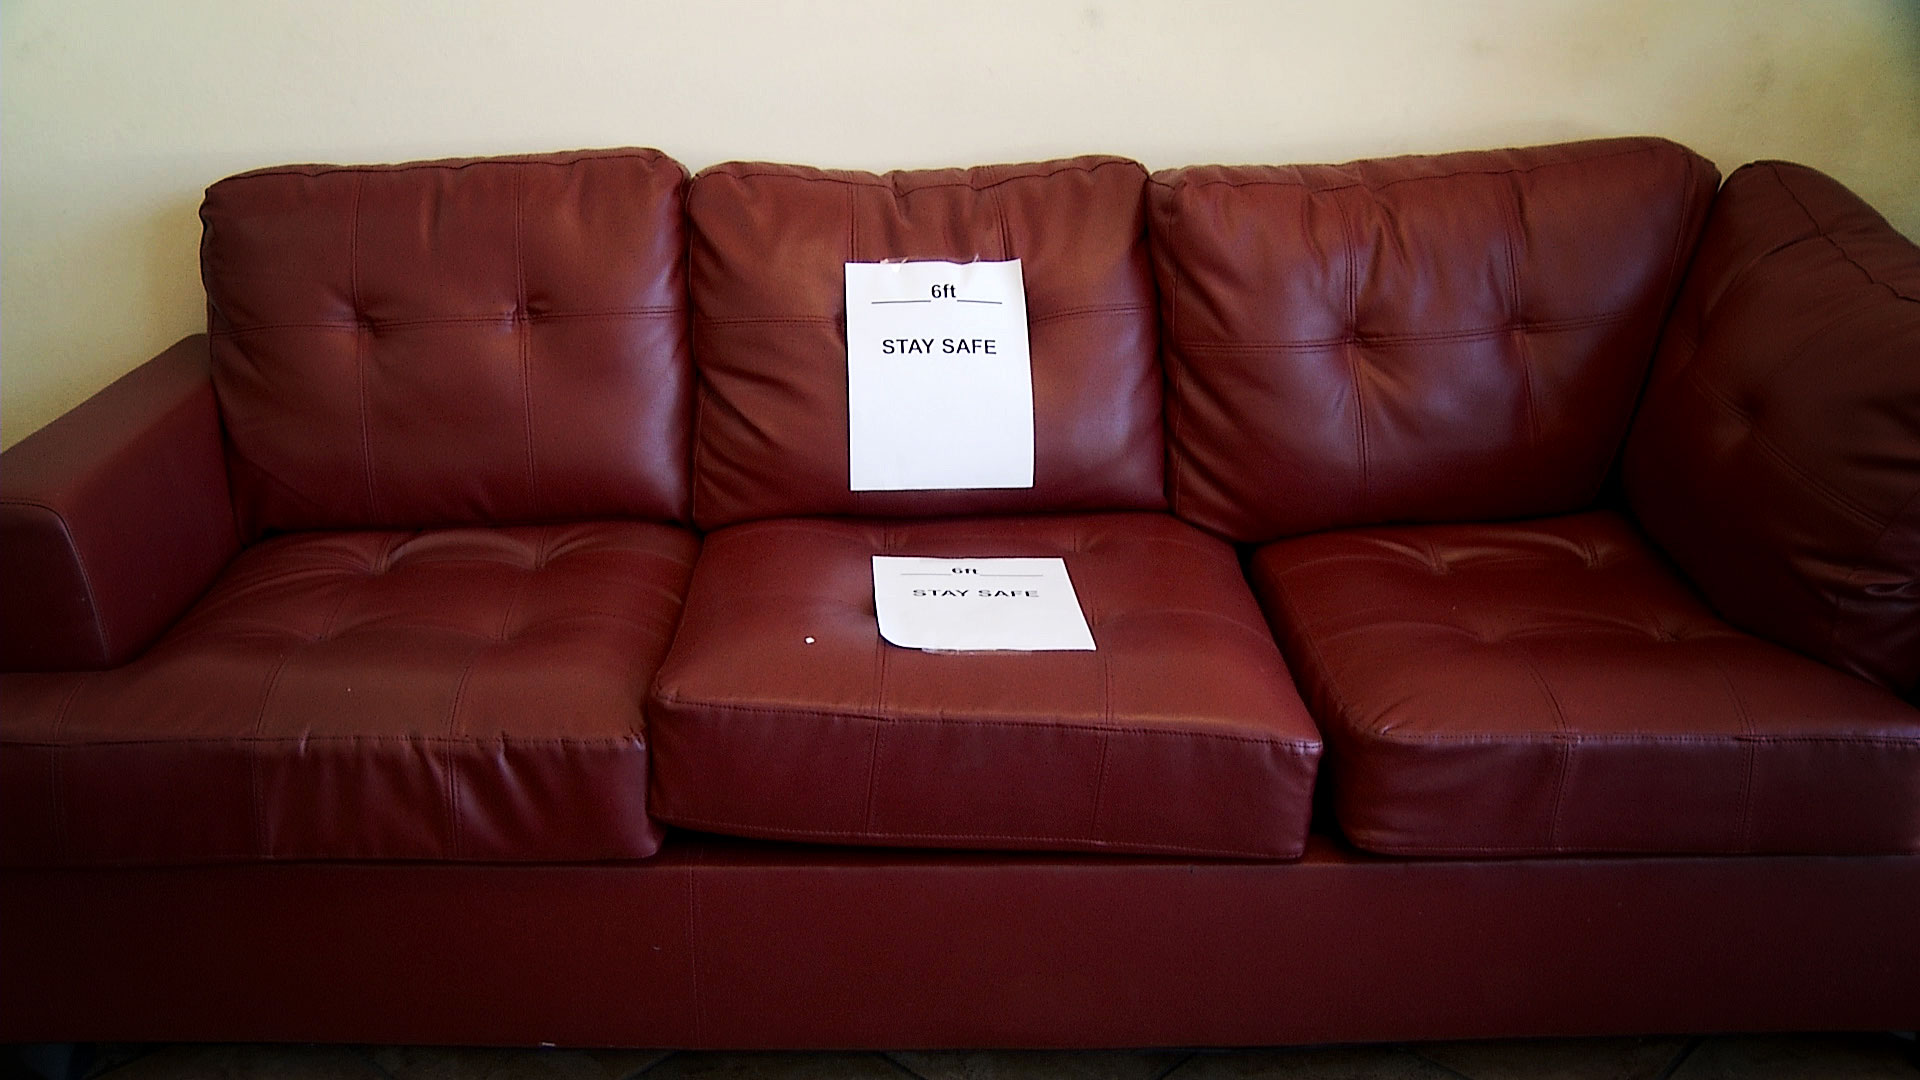 A note posted on a sofa at Eclips Cuts Salon in Tucson reminds guests to remain six feet apart while they wait. The salon reopened with added safety precautions designed to prevent the spread of coronavirus. May 12, 2020.